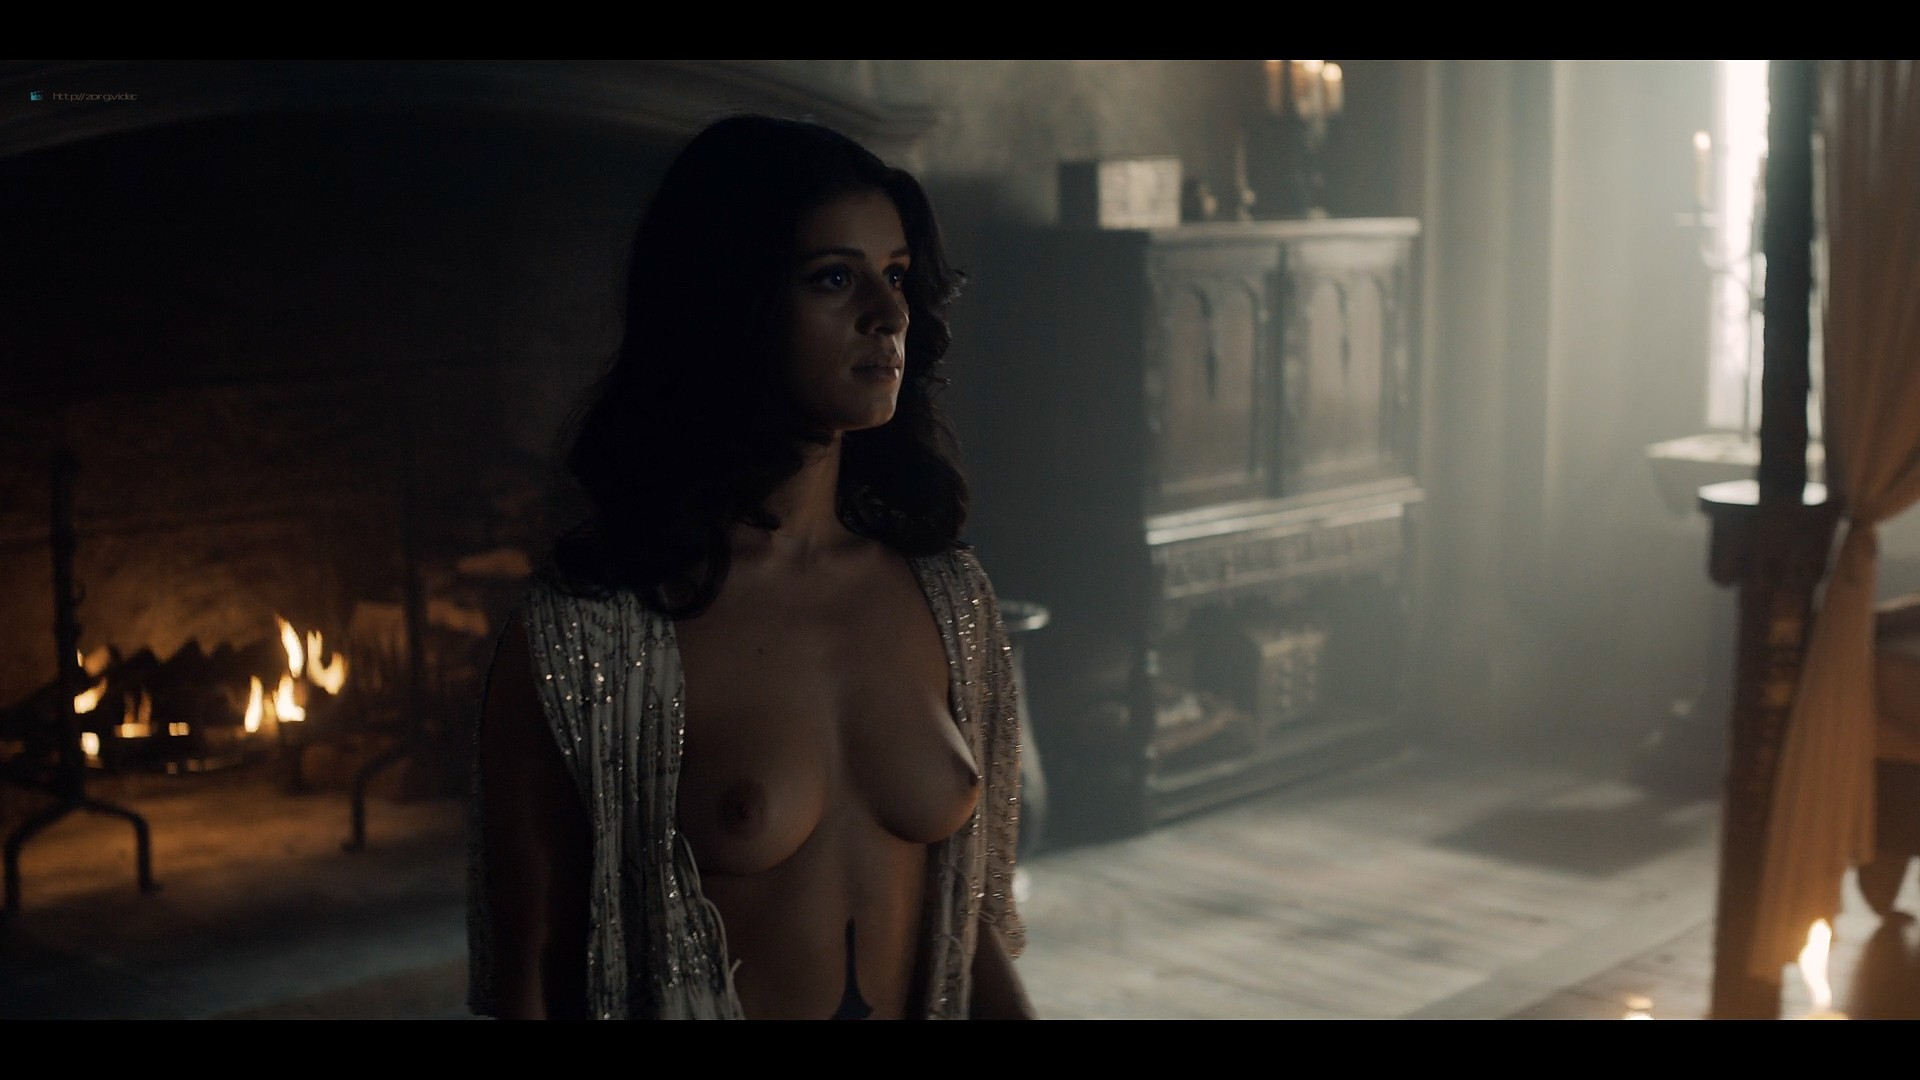 Anya Chalotra nude others nude too - The Witcher (2019) s1e5-6 HD 1080p WEB (9)